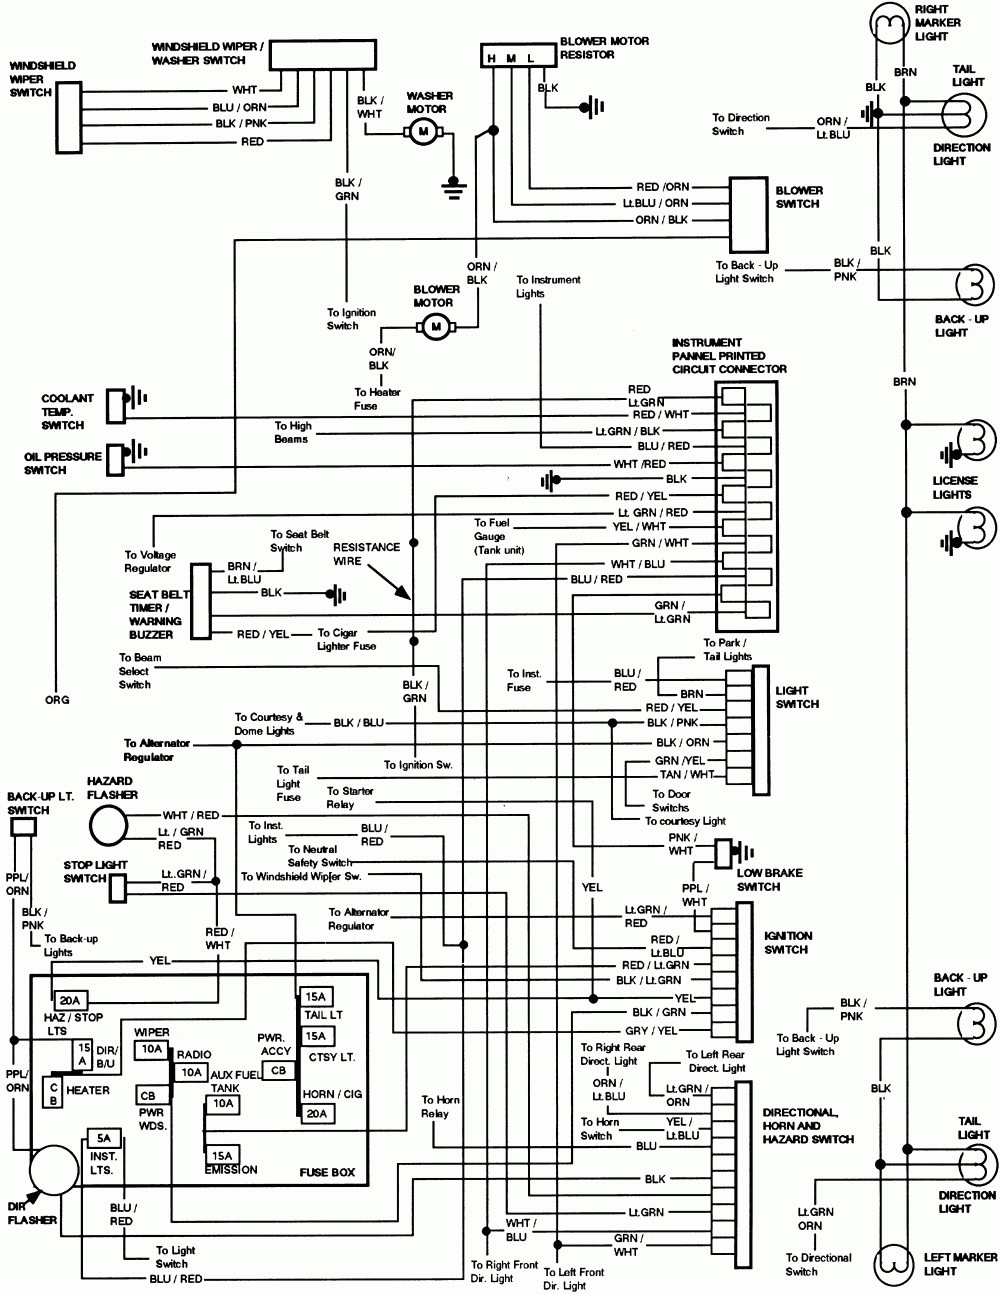 82 f100 engine diagram get free image about wiring diagram wire rh 45 76 79 178